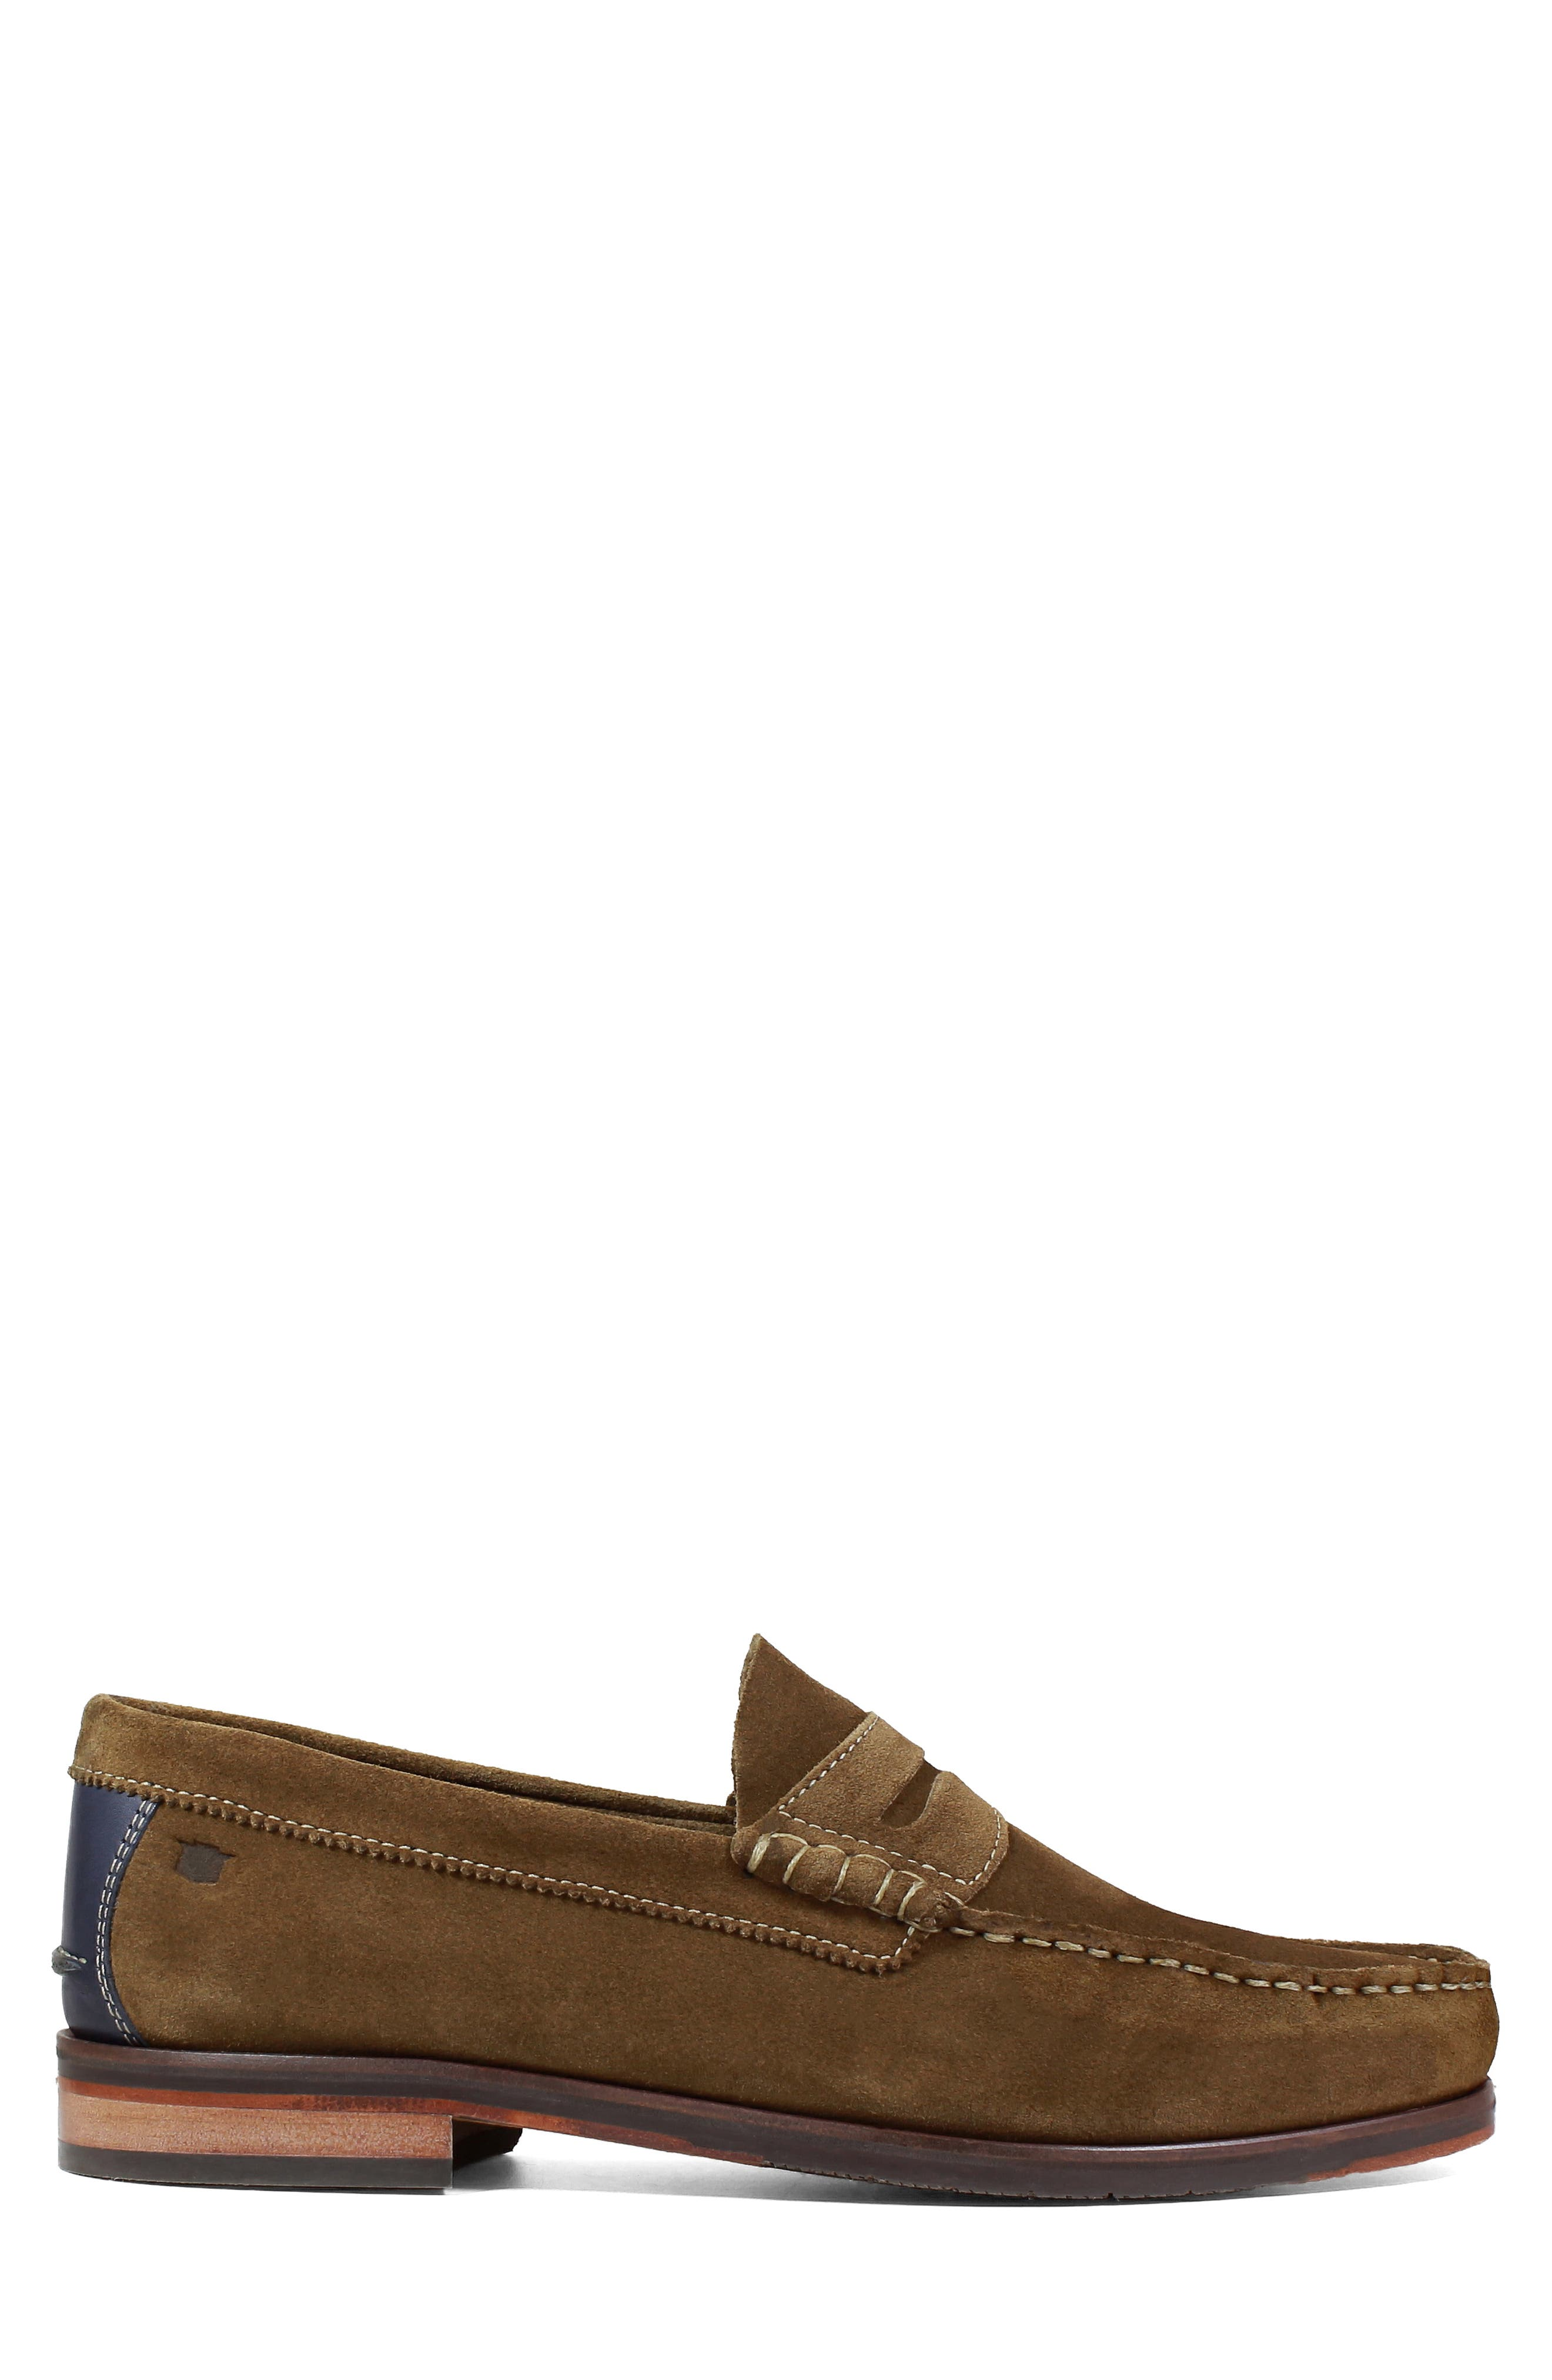 Heads-Up Penny Loafer,                             Alternate thumbnail 3, color,                             SNUFF SUEDE